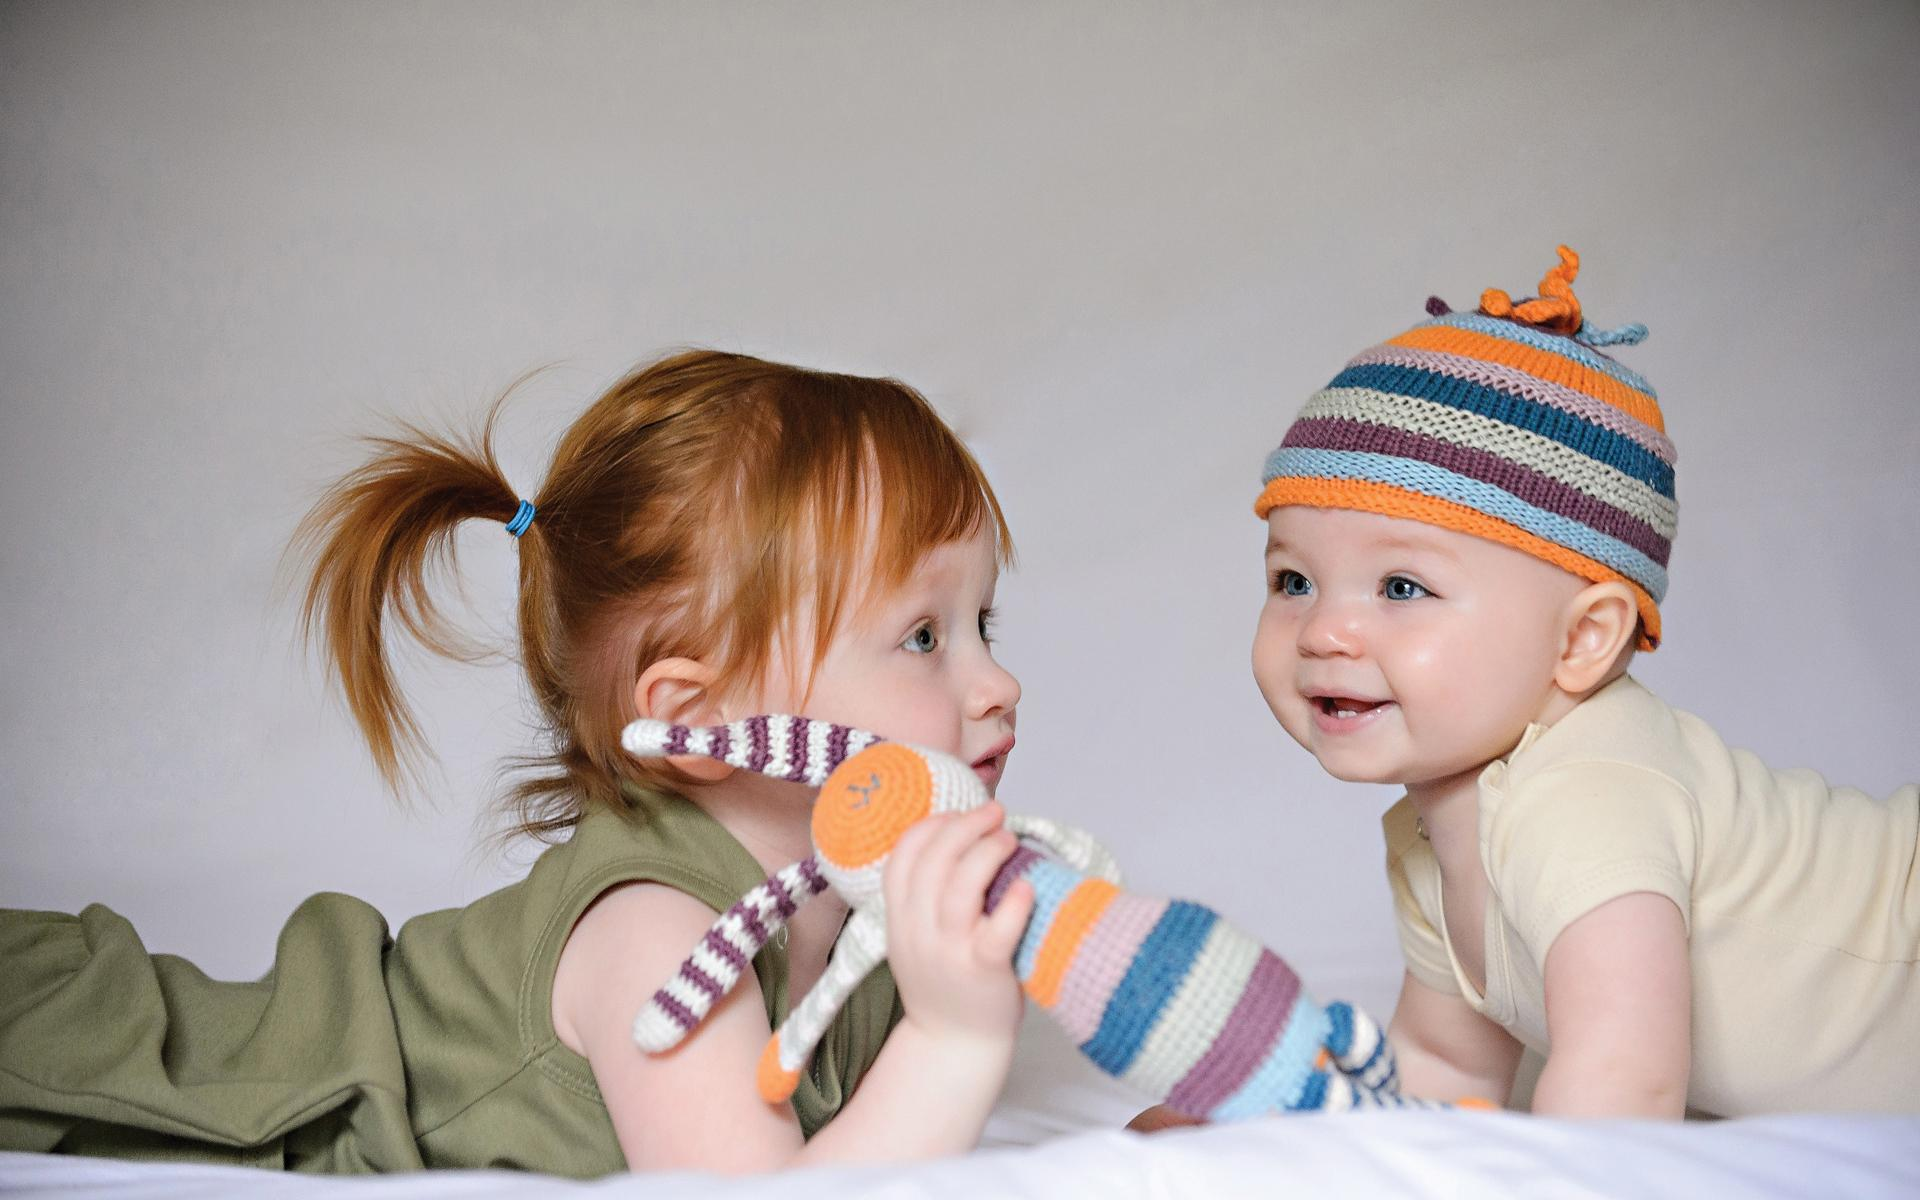 Soft Toys - Is It Time to Update Toy Safety Standards?